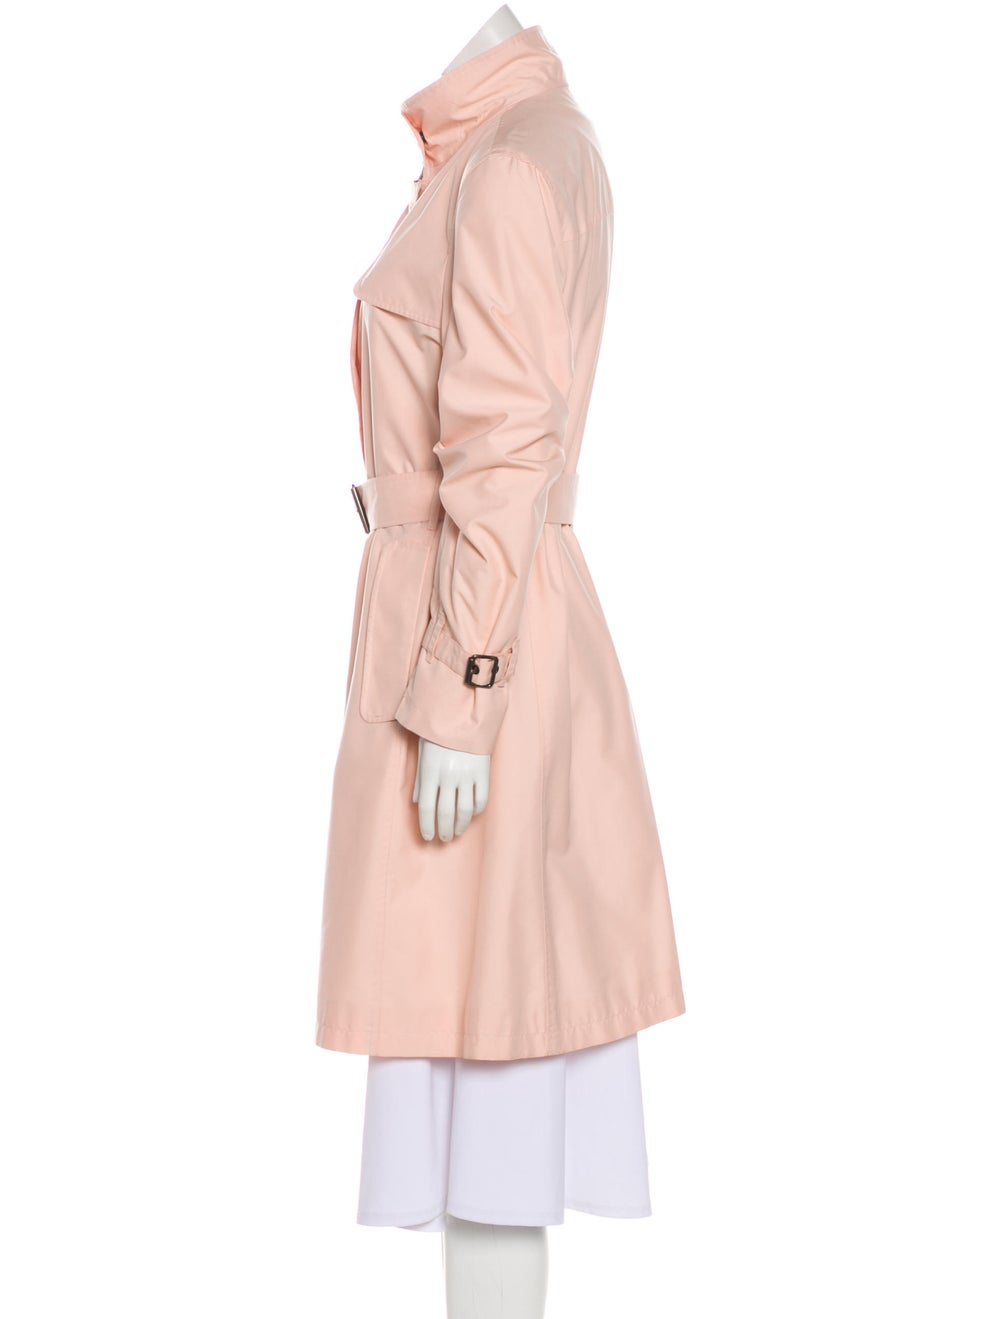 Burberry Tess Trench Coat Pink - image 2